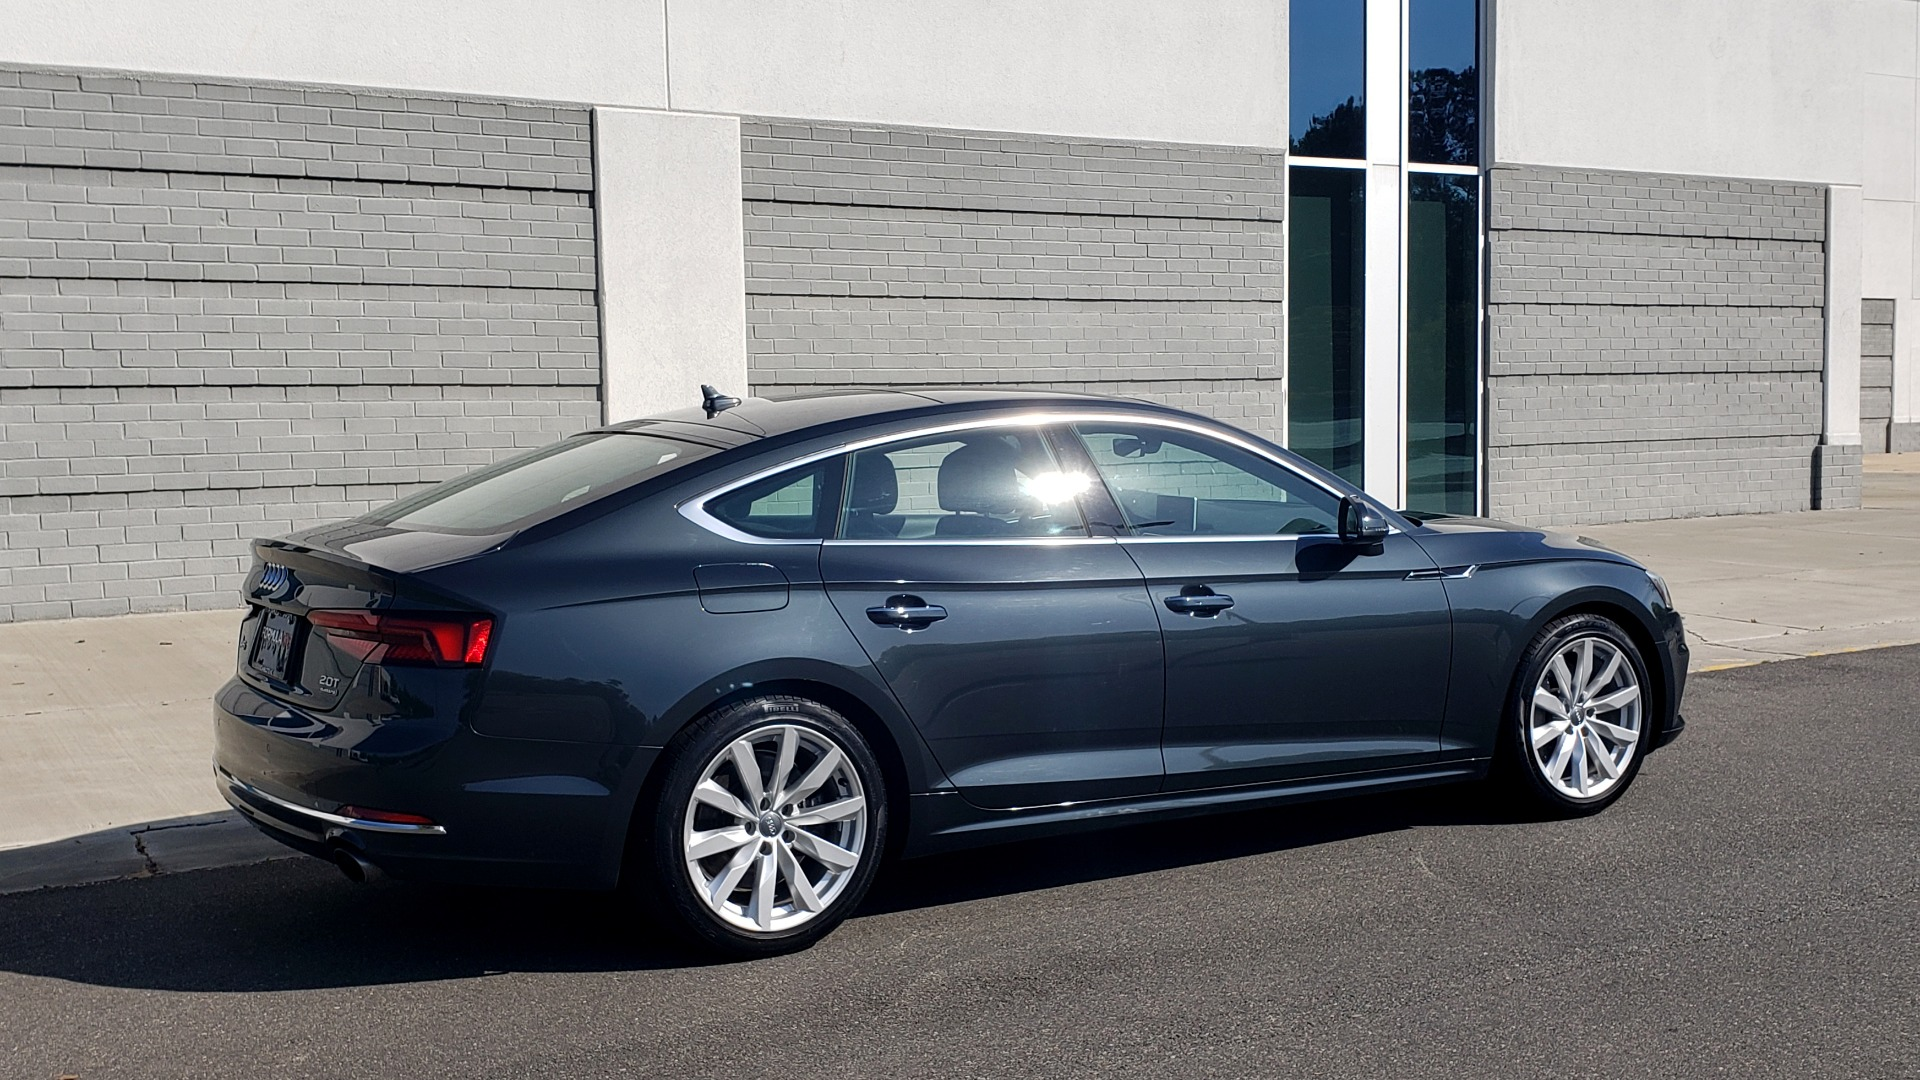 Used 2018 Audi A5 SPORTBACK PREMIUM PLUS 2.0T / AWD / NAV / B&O SND / SUNROOF / REARVIEW for sale Sold at Formula Imports in Charlotte NC 28227 12